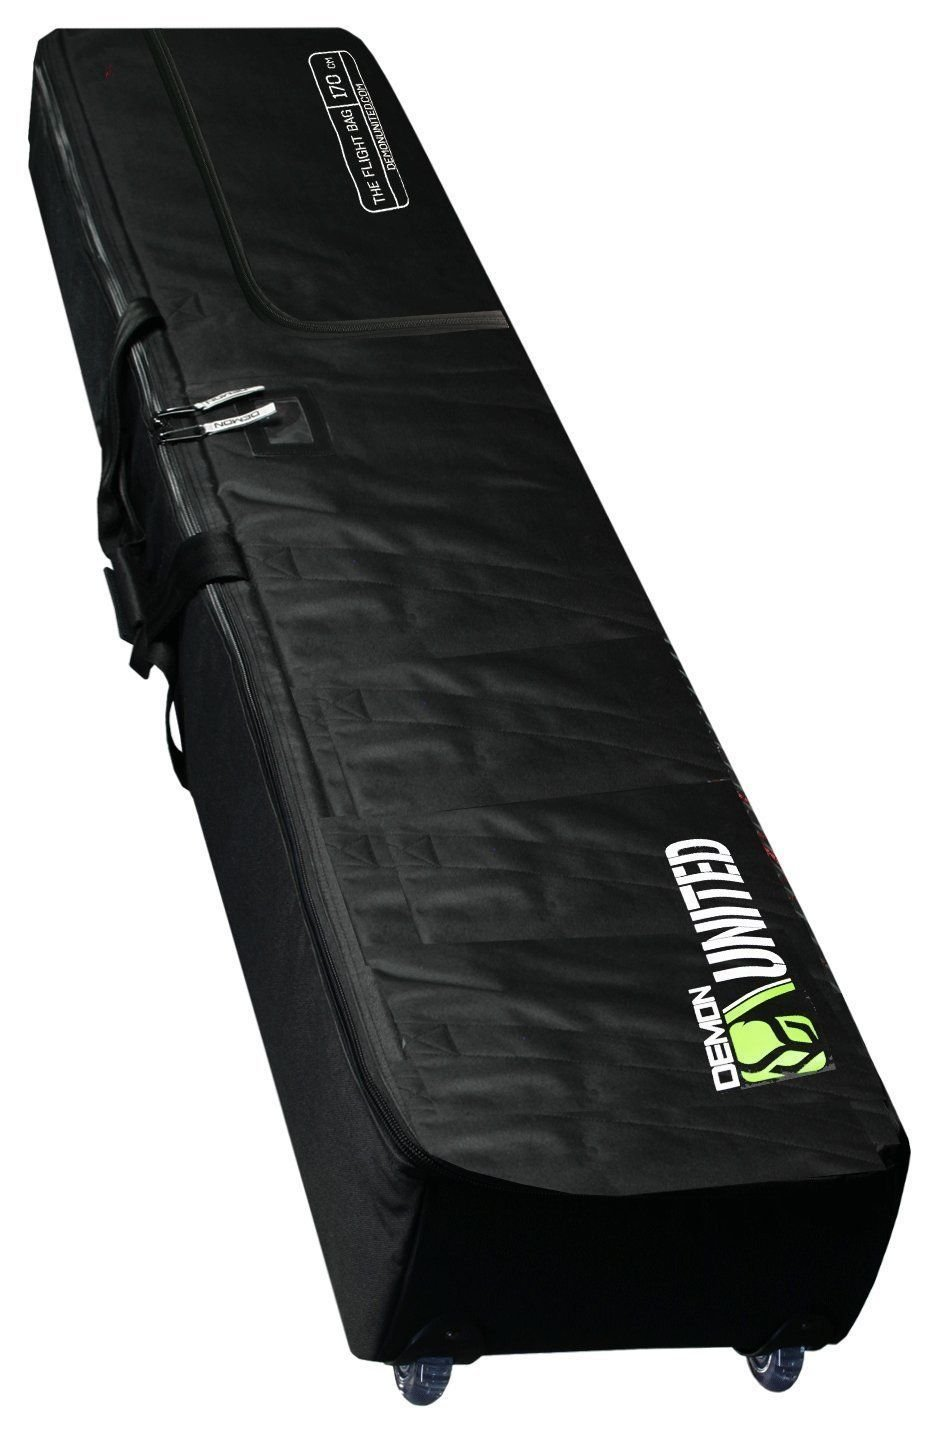 1717597a47 Snowboard Bag For Airline Travel